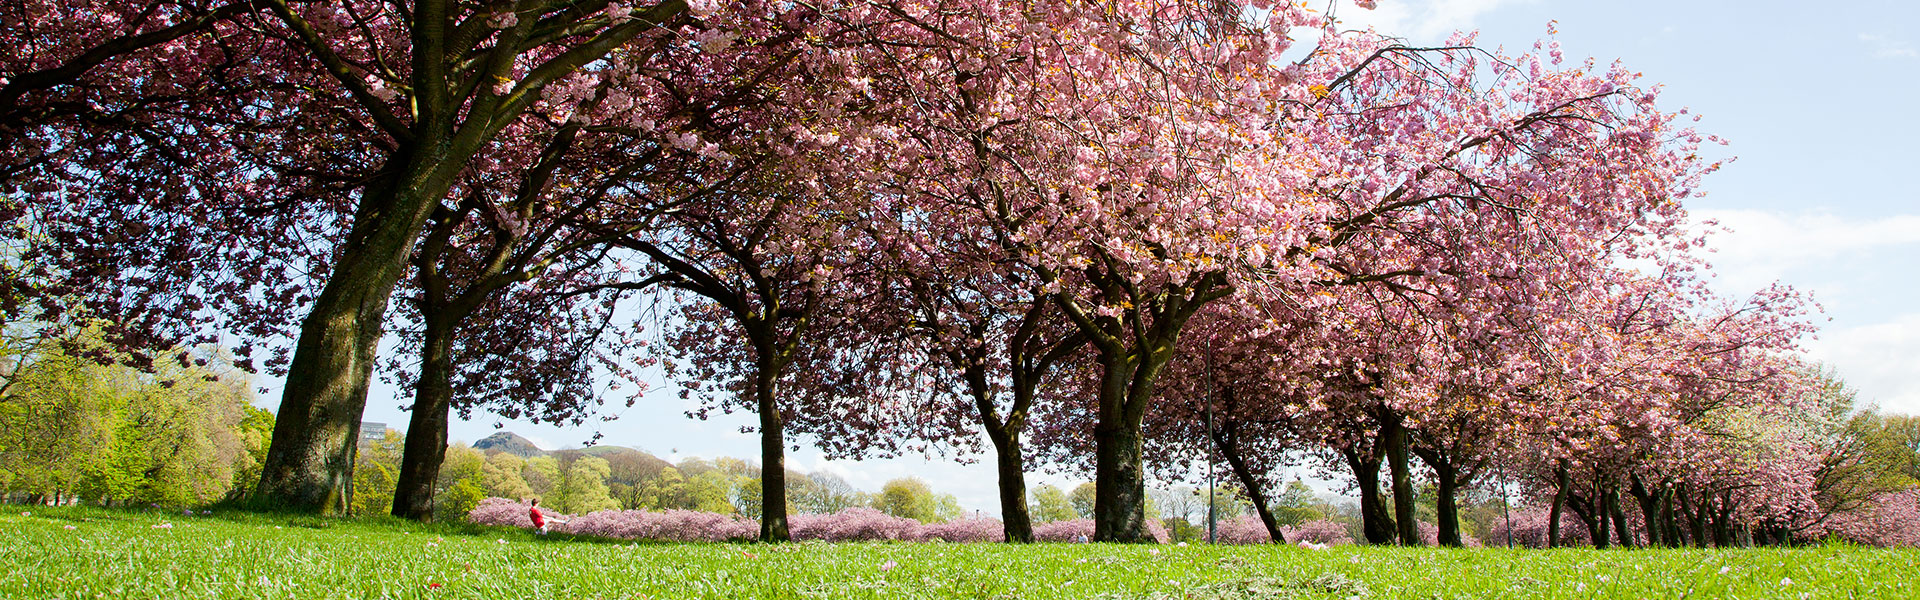 Meadows-cherry-trees02